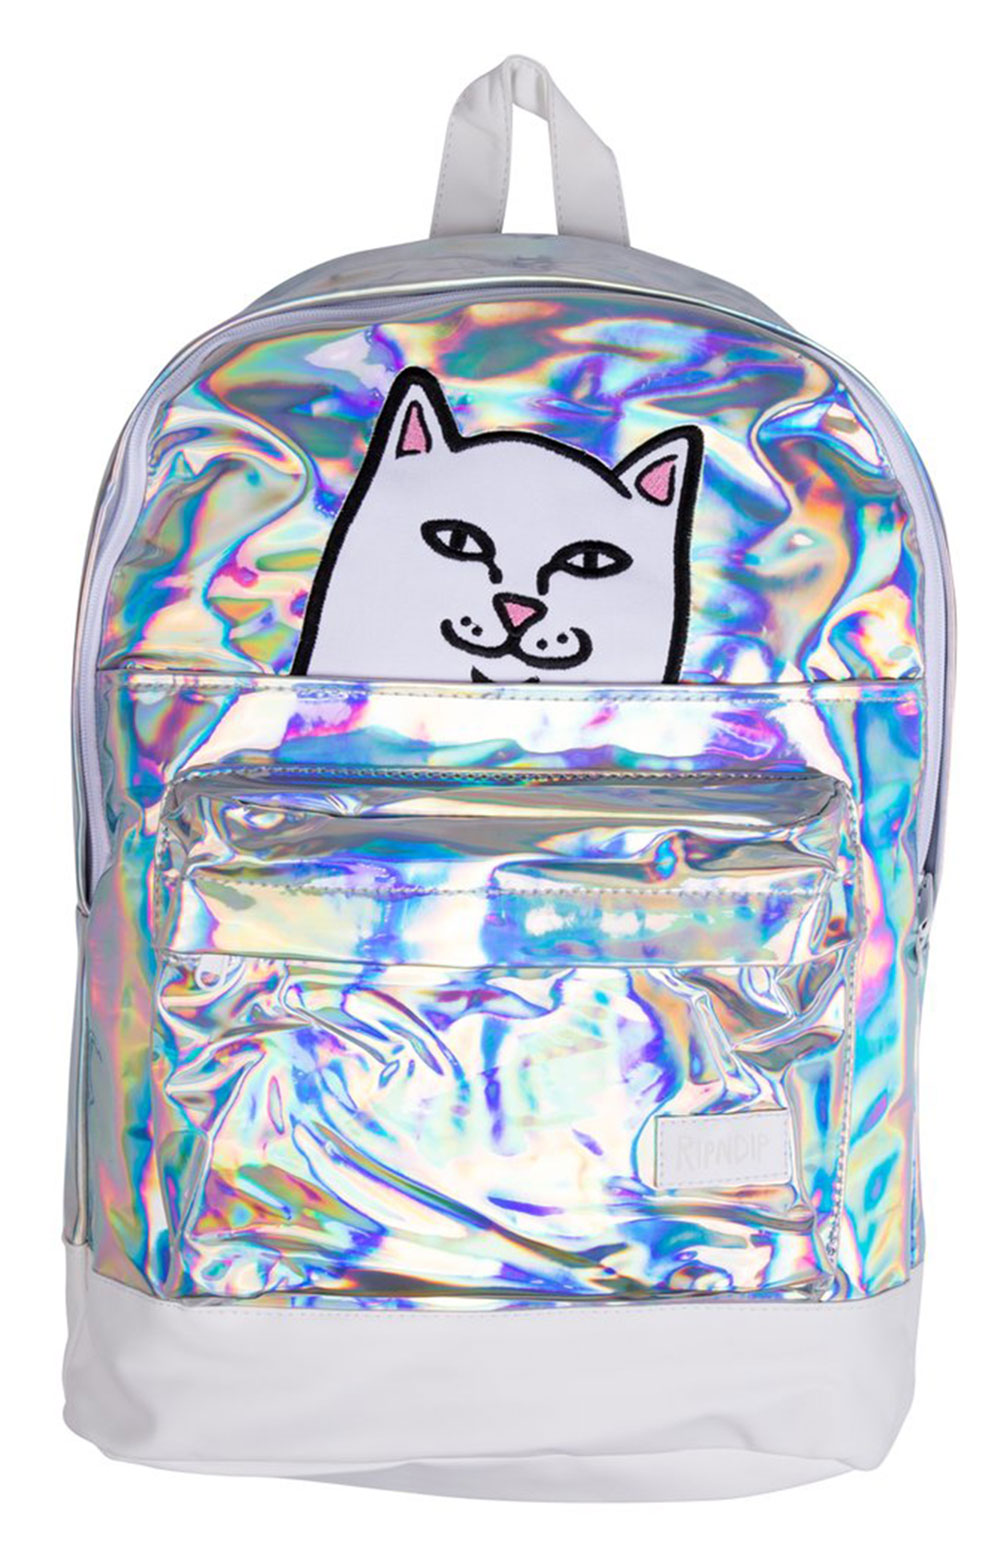 Lord Nermal Backpack (Peace) - Iridescent